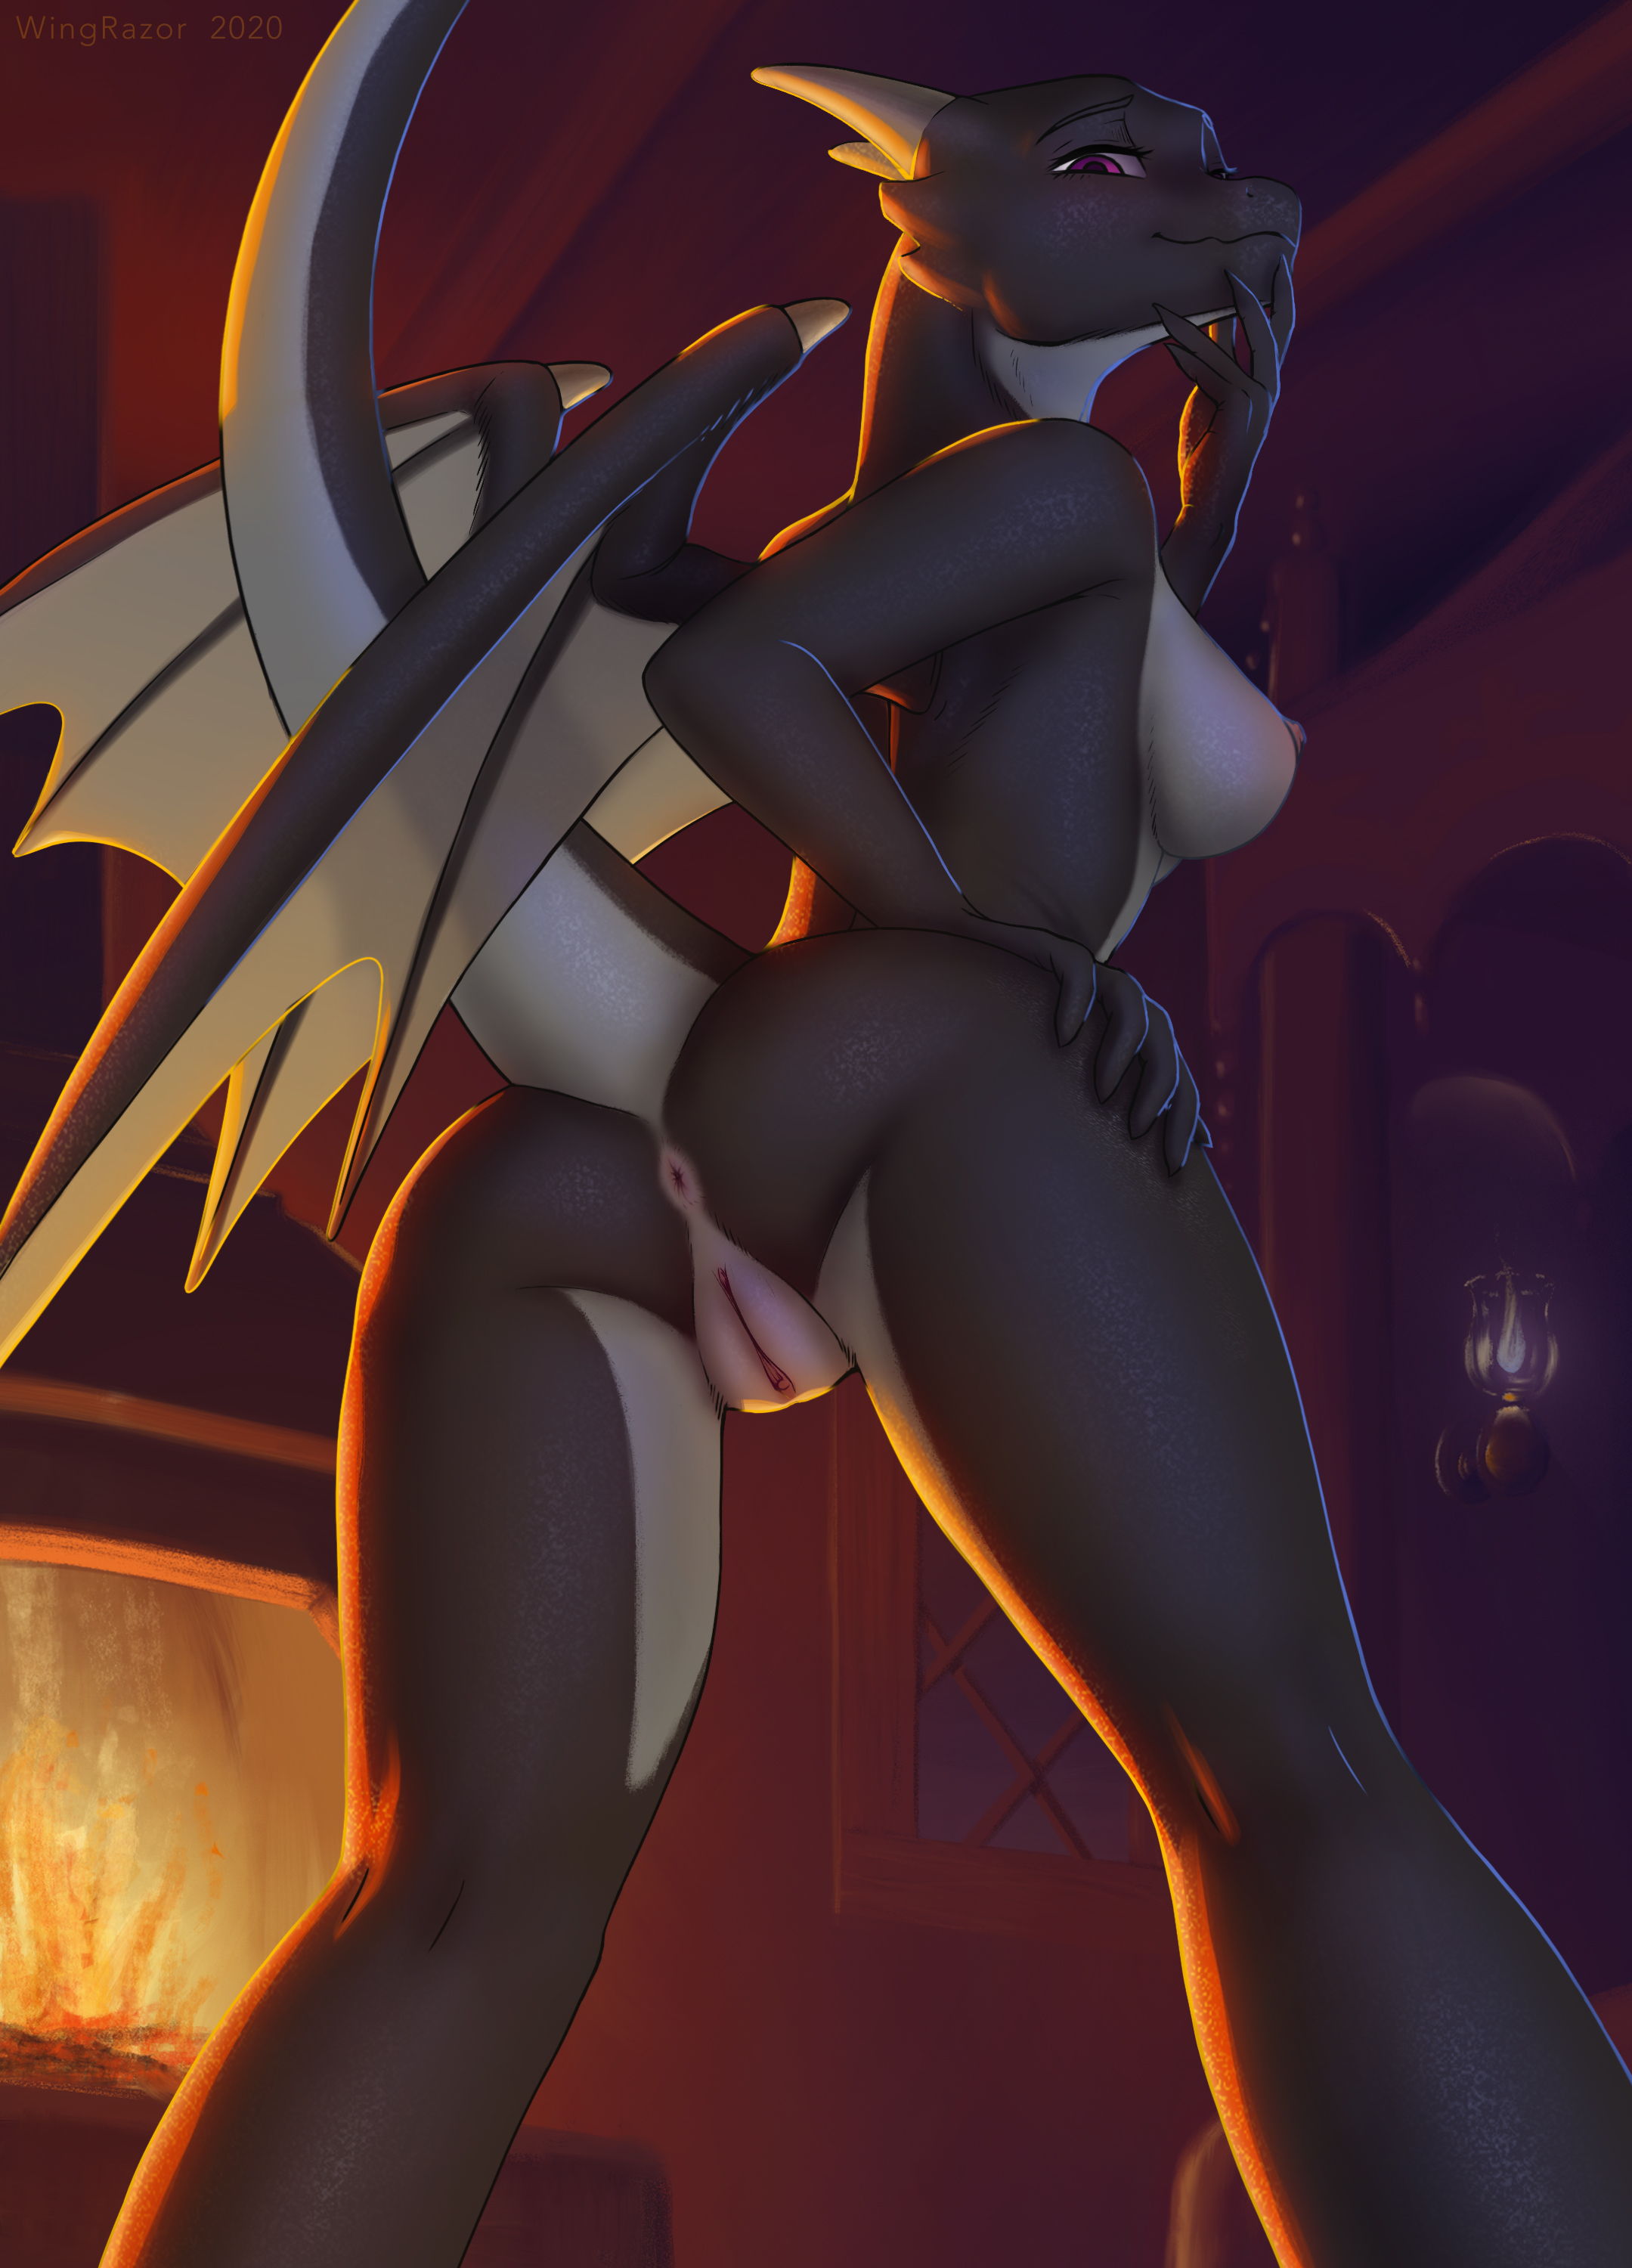 hi res absurd res alyaa anthro anus areolae ass black body black claws black scales black wings breasts claws dark dragon female fingers finger claws fire firelight fireplace genitals hand on hip lamp looking at viewer looking back low-angle view membrane membranous wings nipples purple eyes pussy raised tail rear view scales scalie smile smirk solo touching face white body white scales wingrazor wings